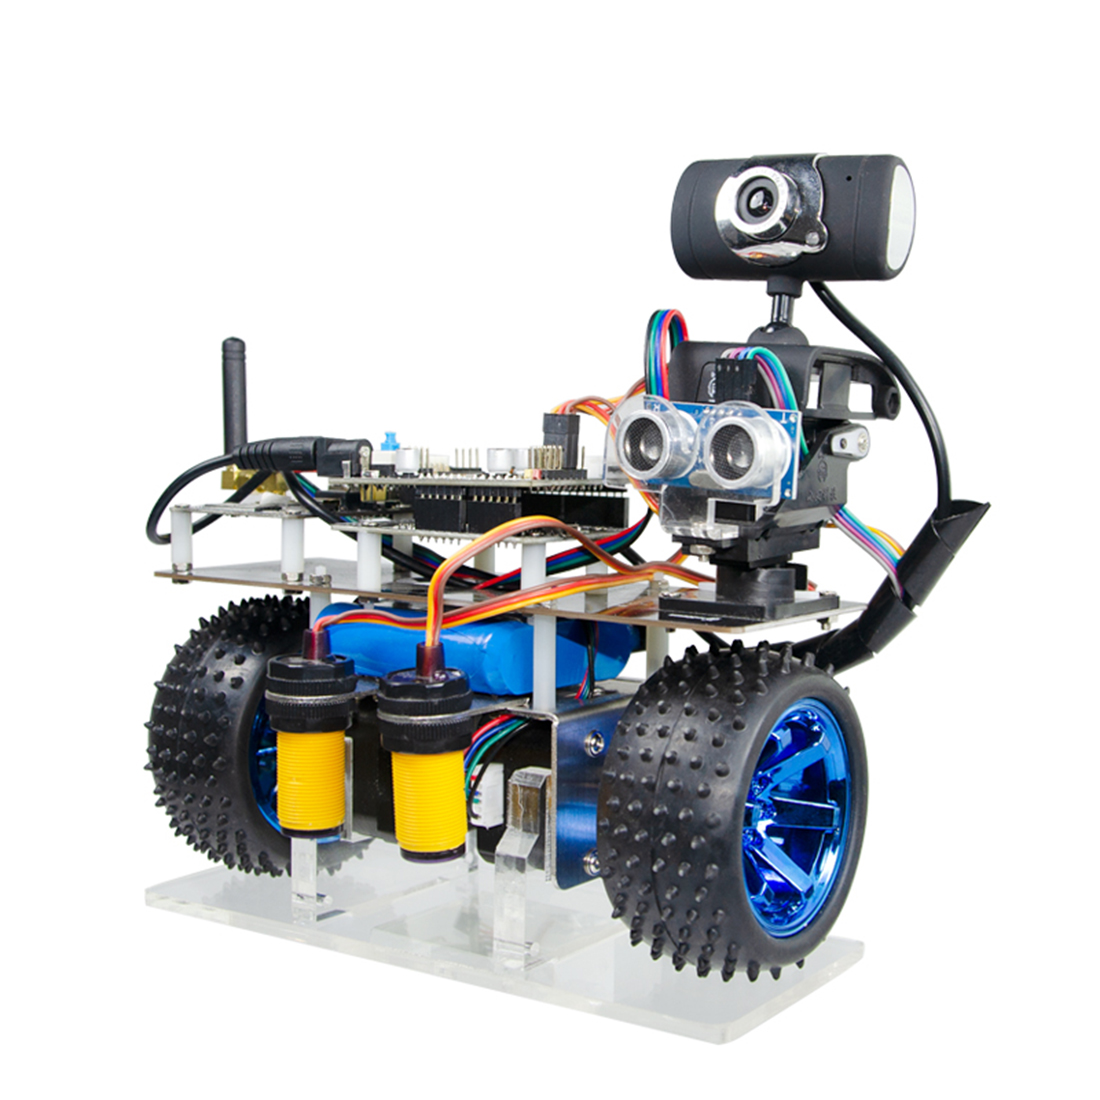 Programmable Intelligent Balance Car WiFi Video Robot Car APP PC Remote Control For STM32  Patrol Obstacle Avoidance